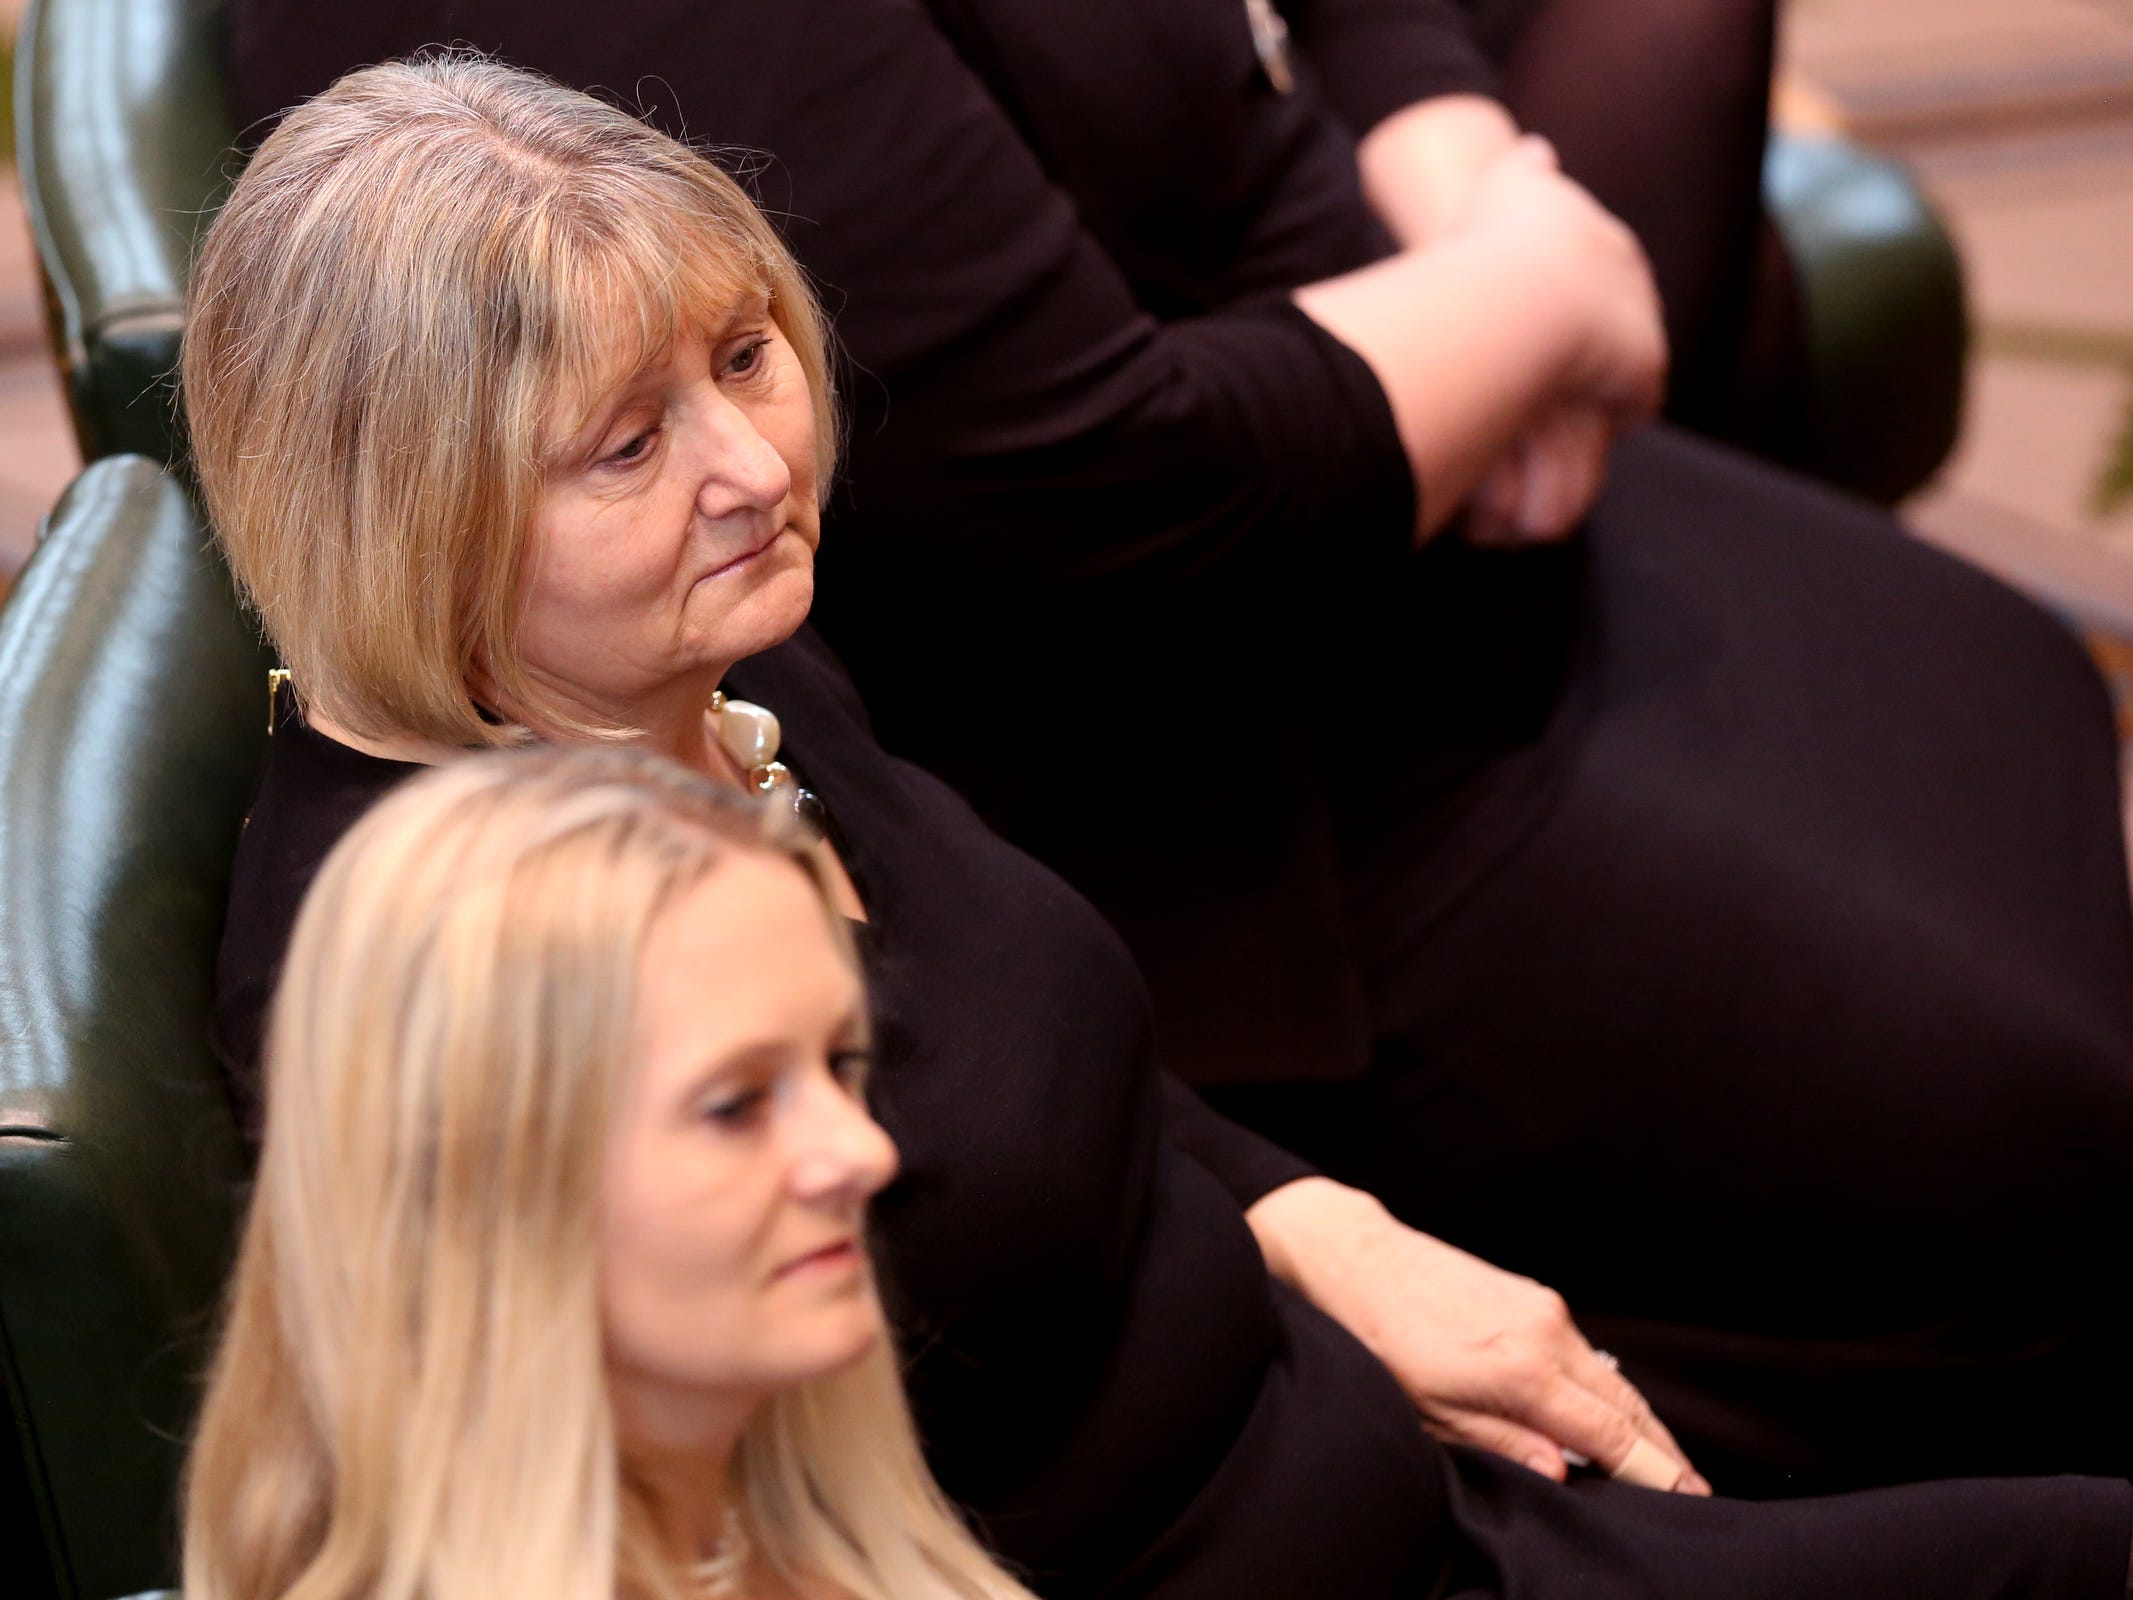 Cathy Richardson, listens during the state funeral for her husband, Secretary of State Dennis Richardson, at the Oregon State Capitol in Salem on Wednesday, March 6, 2019.